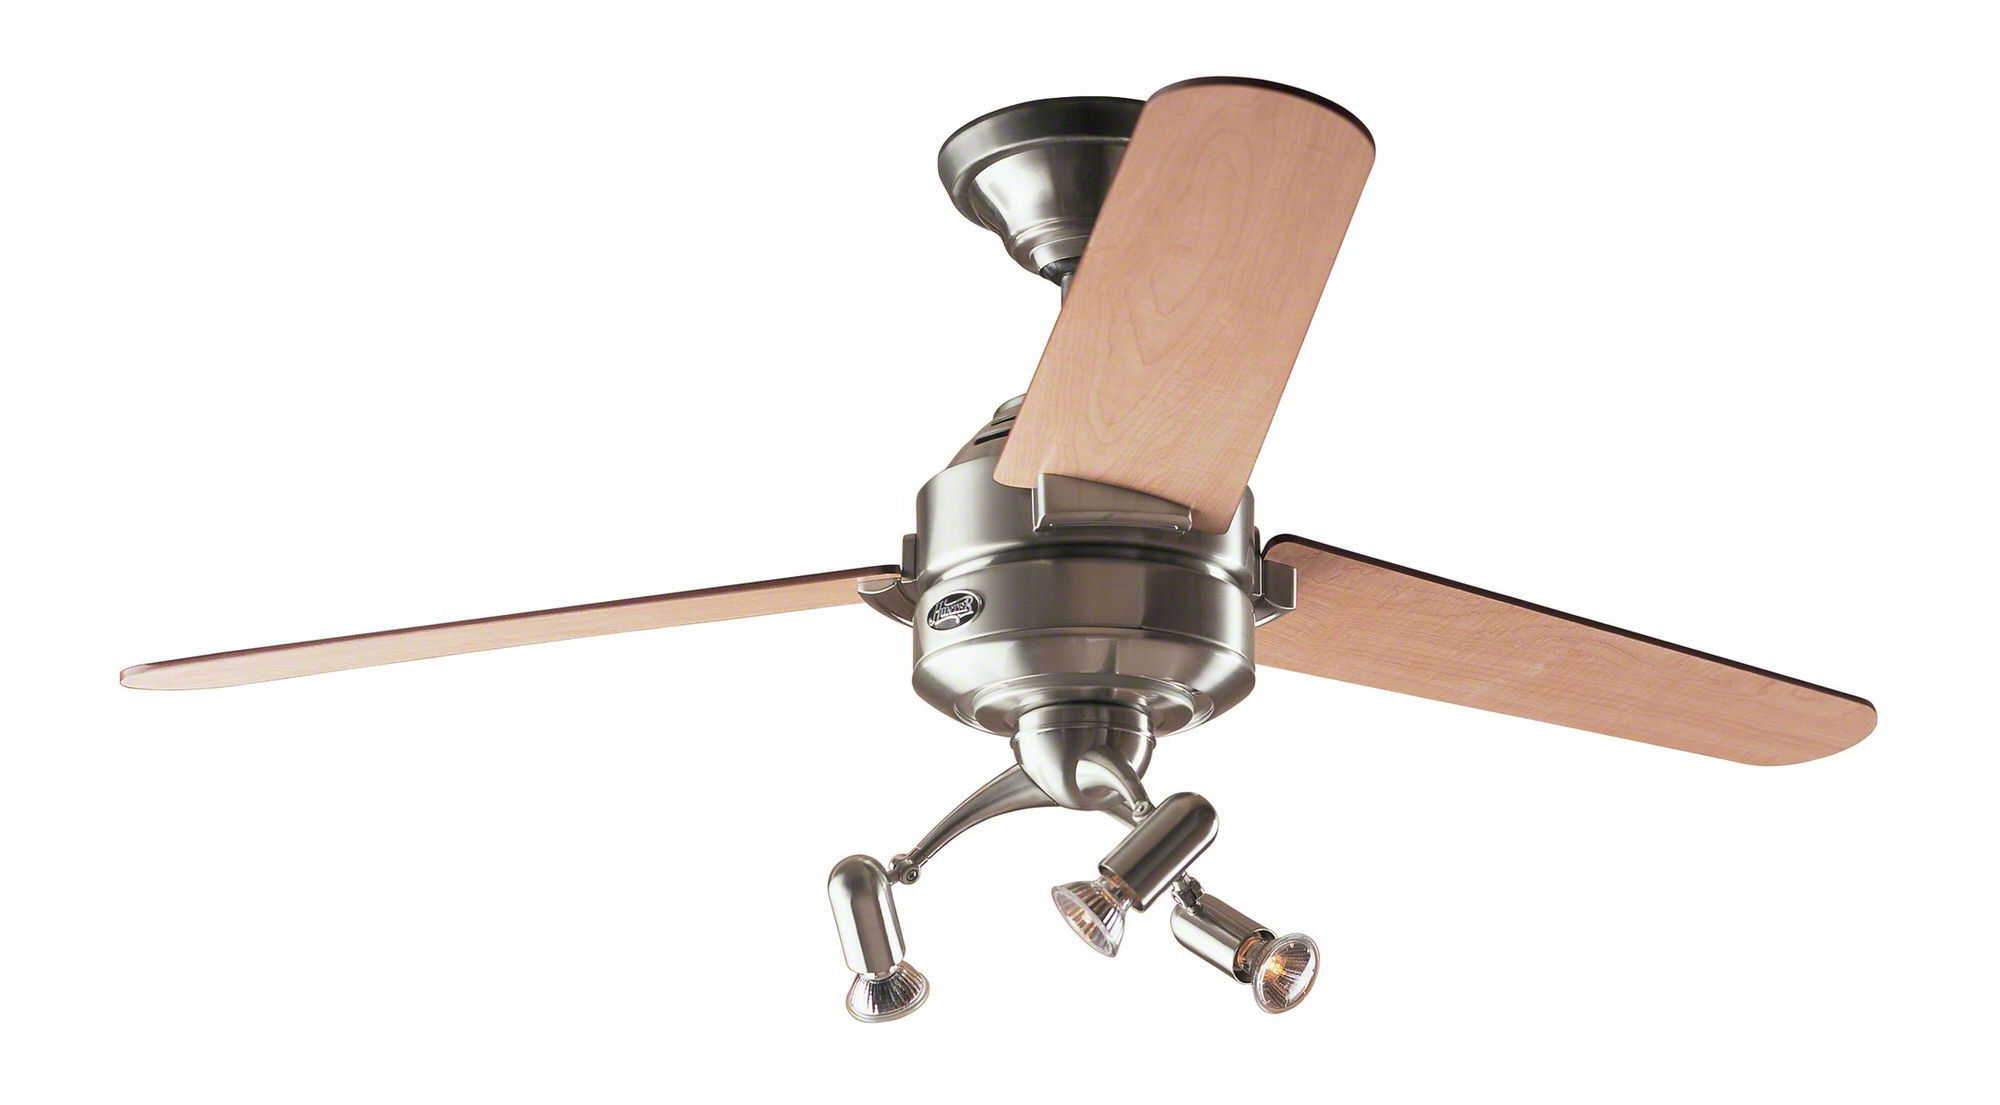 Hunter Carera Ceiling Fan In Brushed Nickel With Free Light Kit And Drop Rod Bargain 60 Off